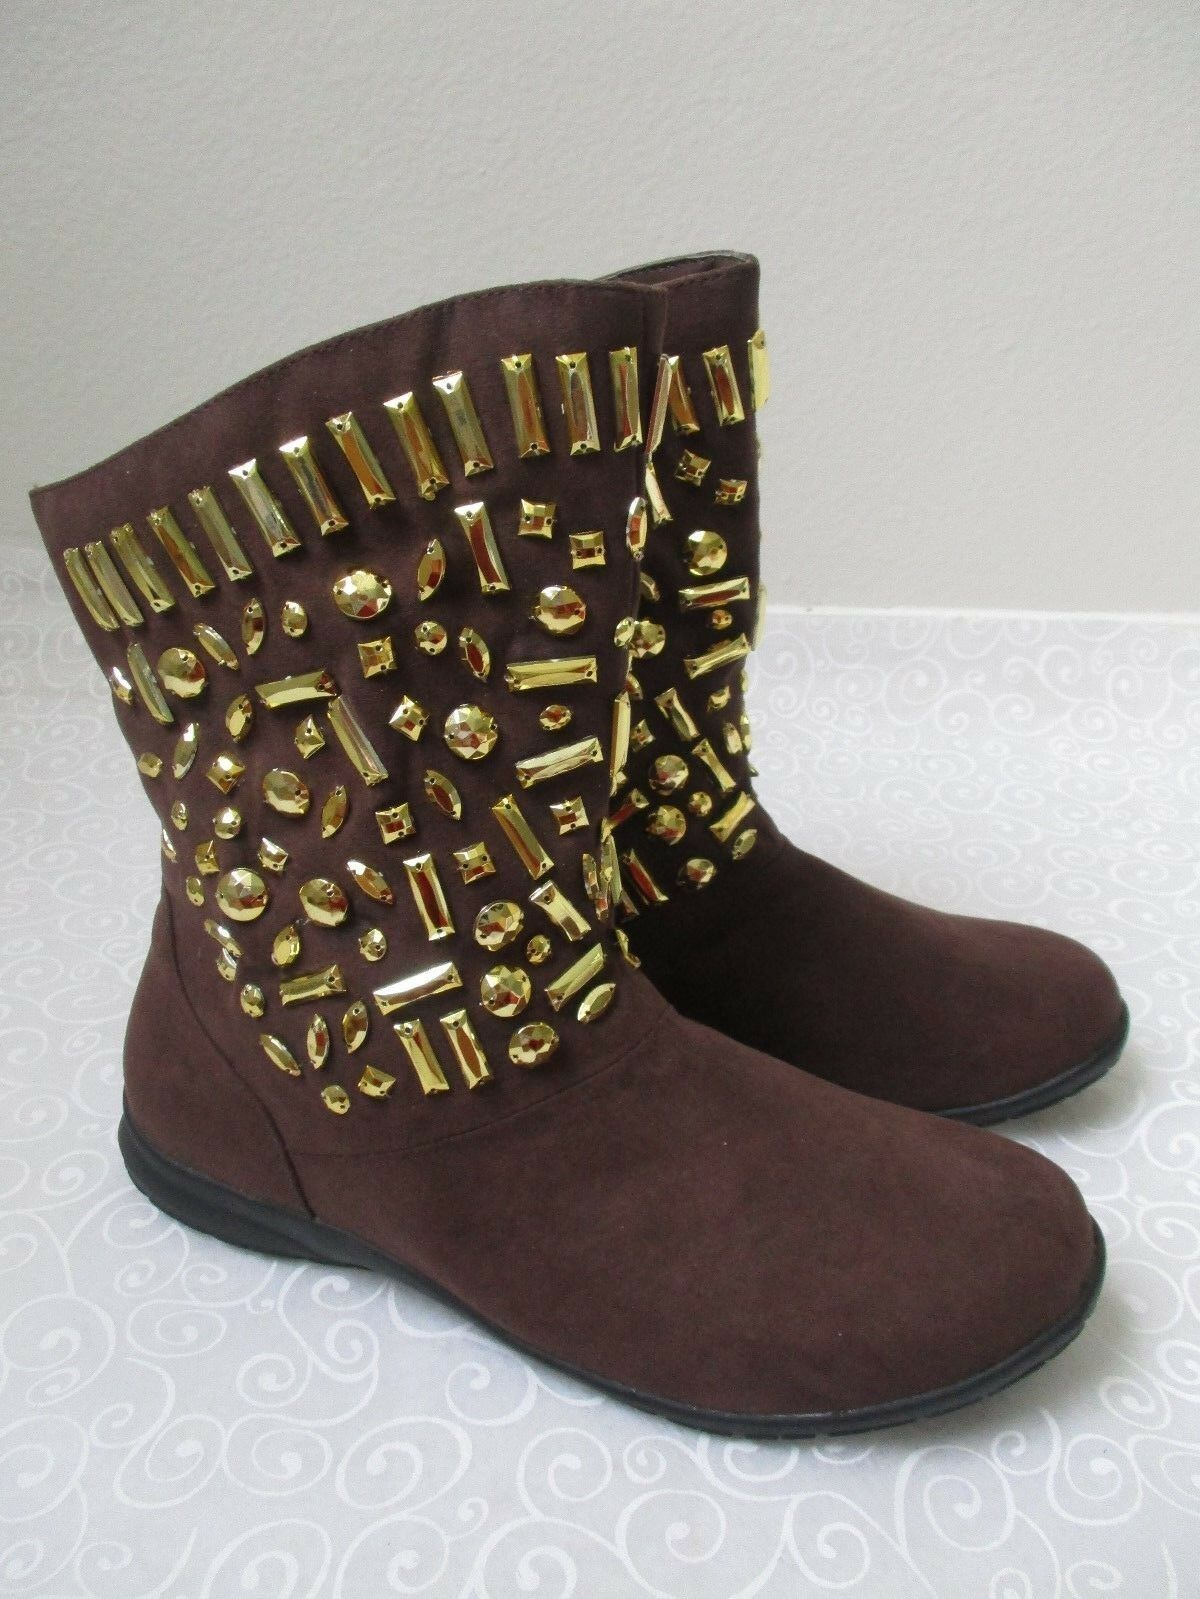 120 JOAN BOYCE FLAT BROWN & GOLD BEADED FAUX FUR BOOTS SIZE 9 1/2 M - NEU